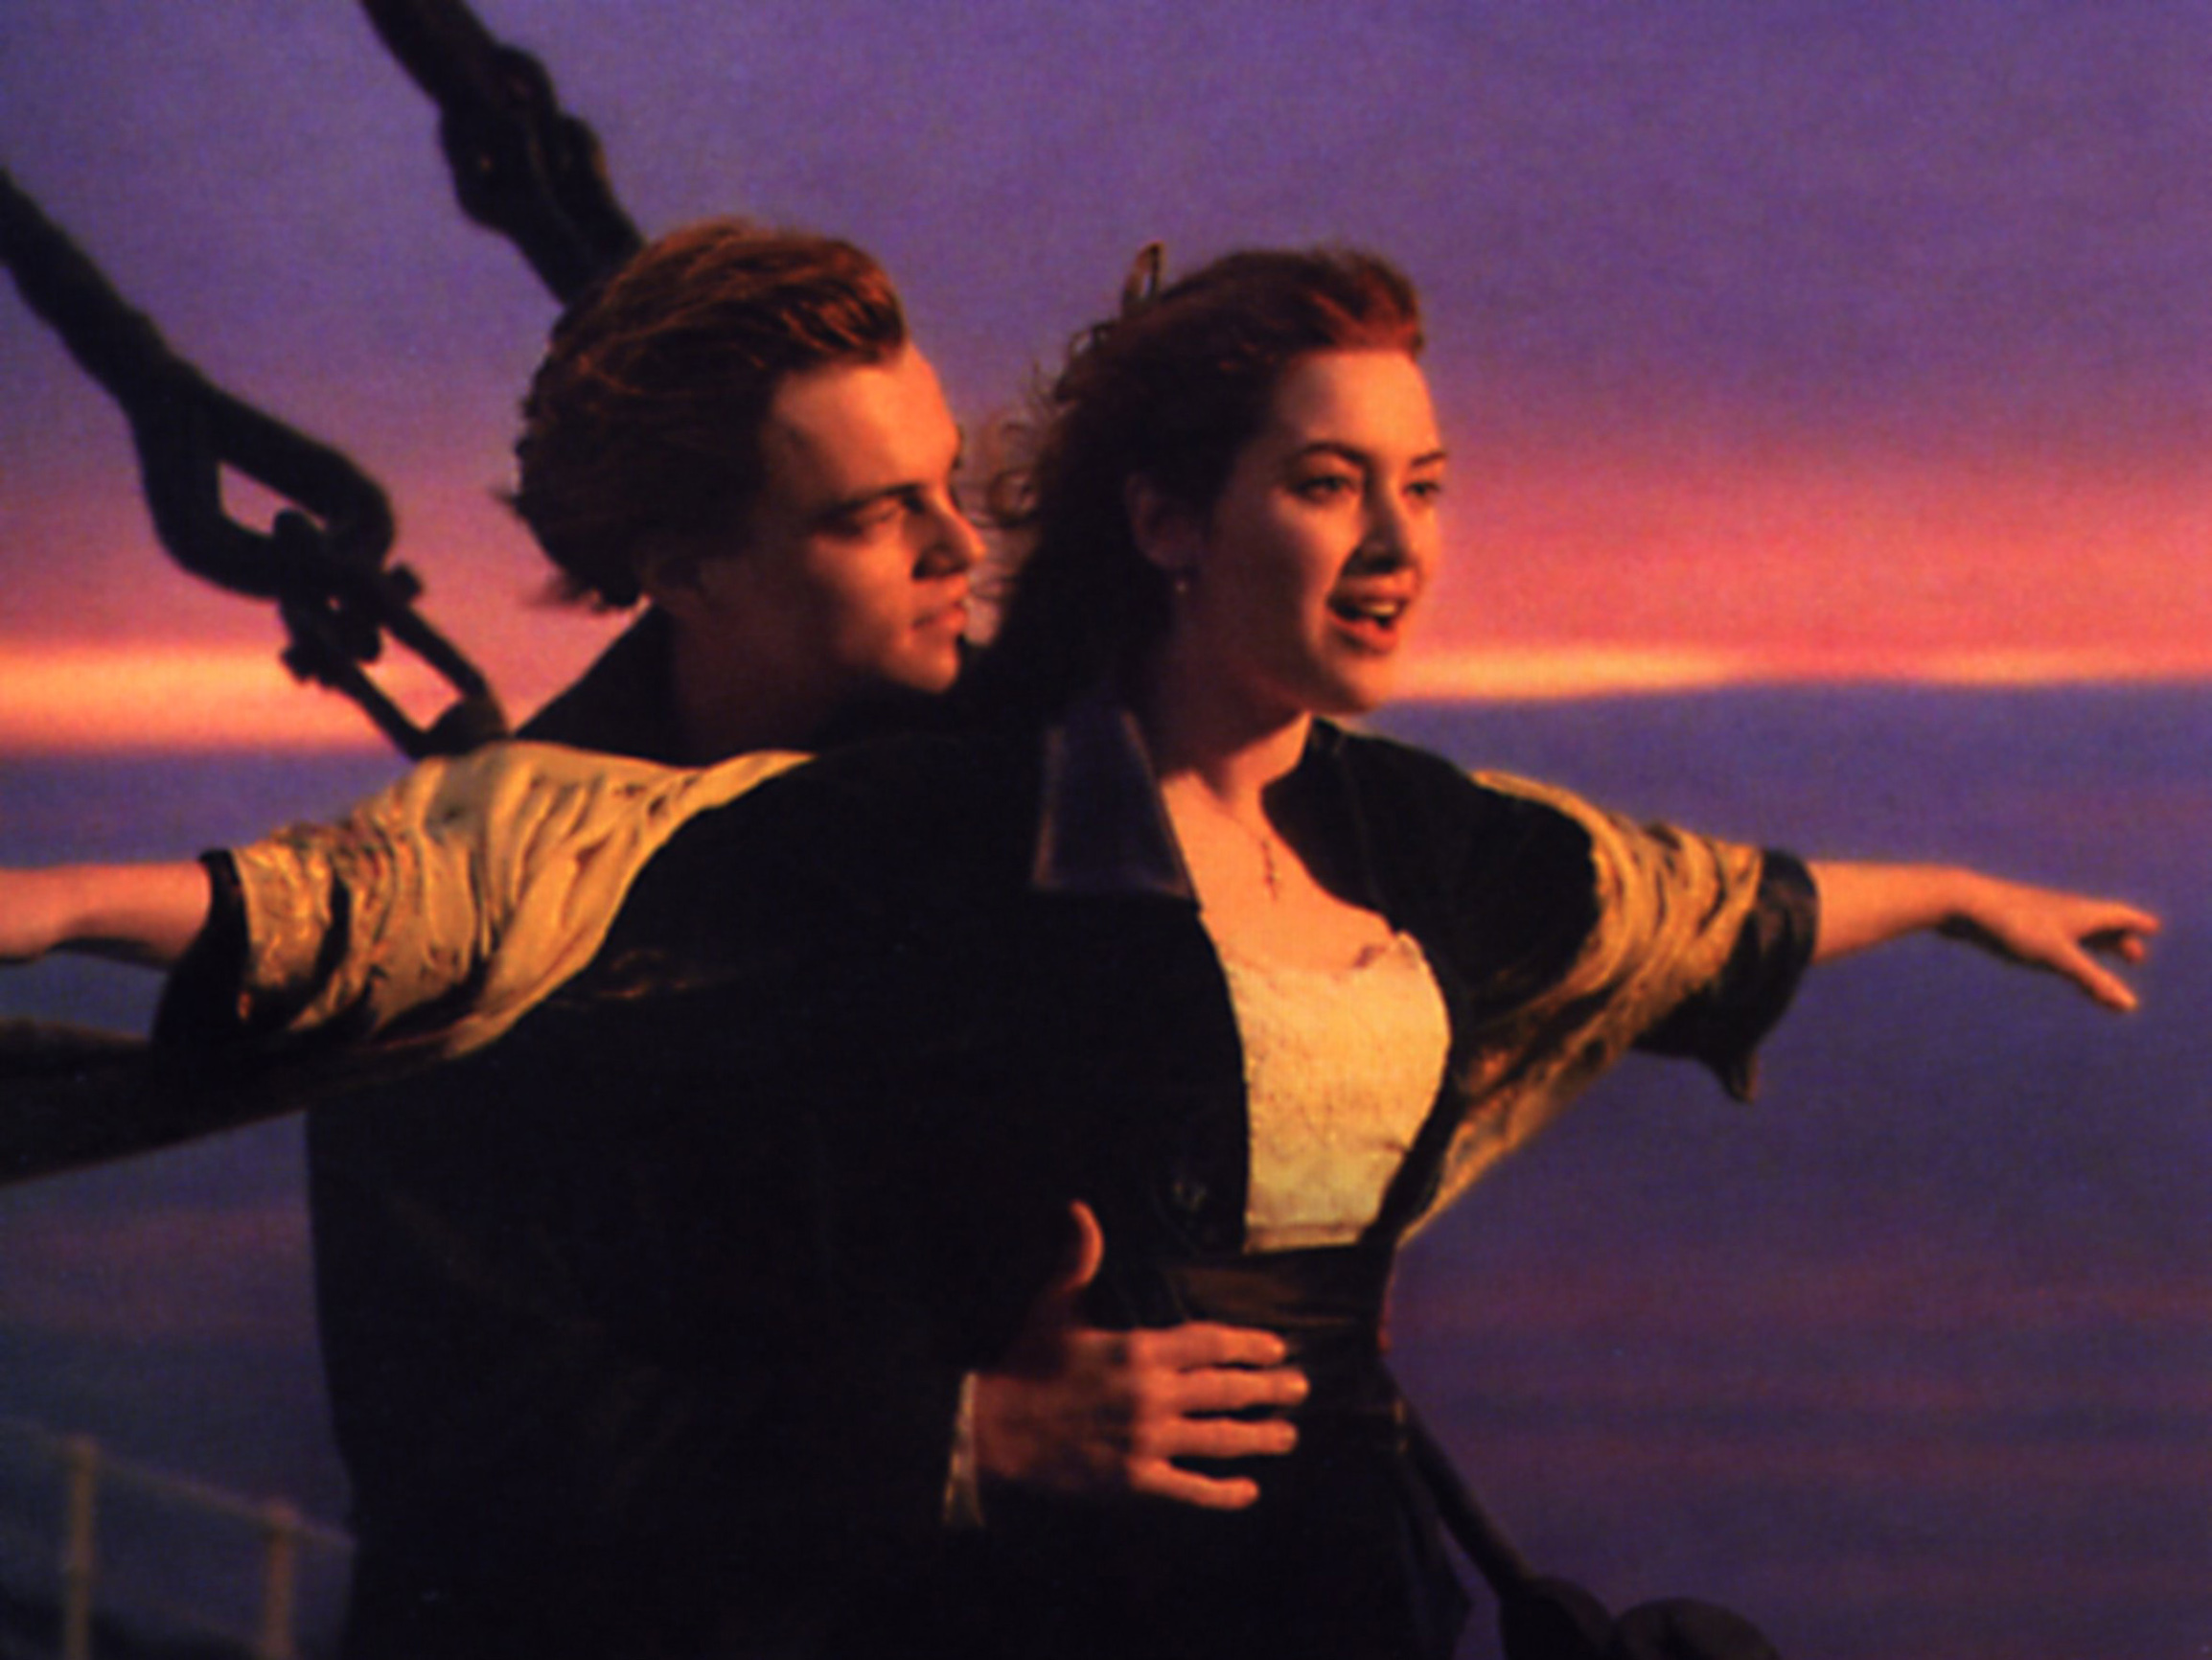 Titanic, (TITANIC) USA 1997, Regie: James Cameron, LEONARDO DI CAPRIO, KATE WINSLET, Stichwort: Sonnenuntergang,Image: 379639029, License: Rights-managed, Restrictions: Nur redaktionelle Nutzung im Zusammenhang mit dem Film. Editorial usage only and only related to the movie., Model Release: no, Credit line: United Archives/Impress / United Archives / Profimedia